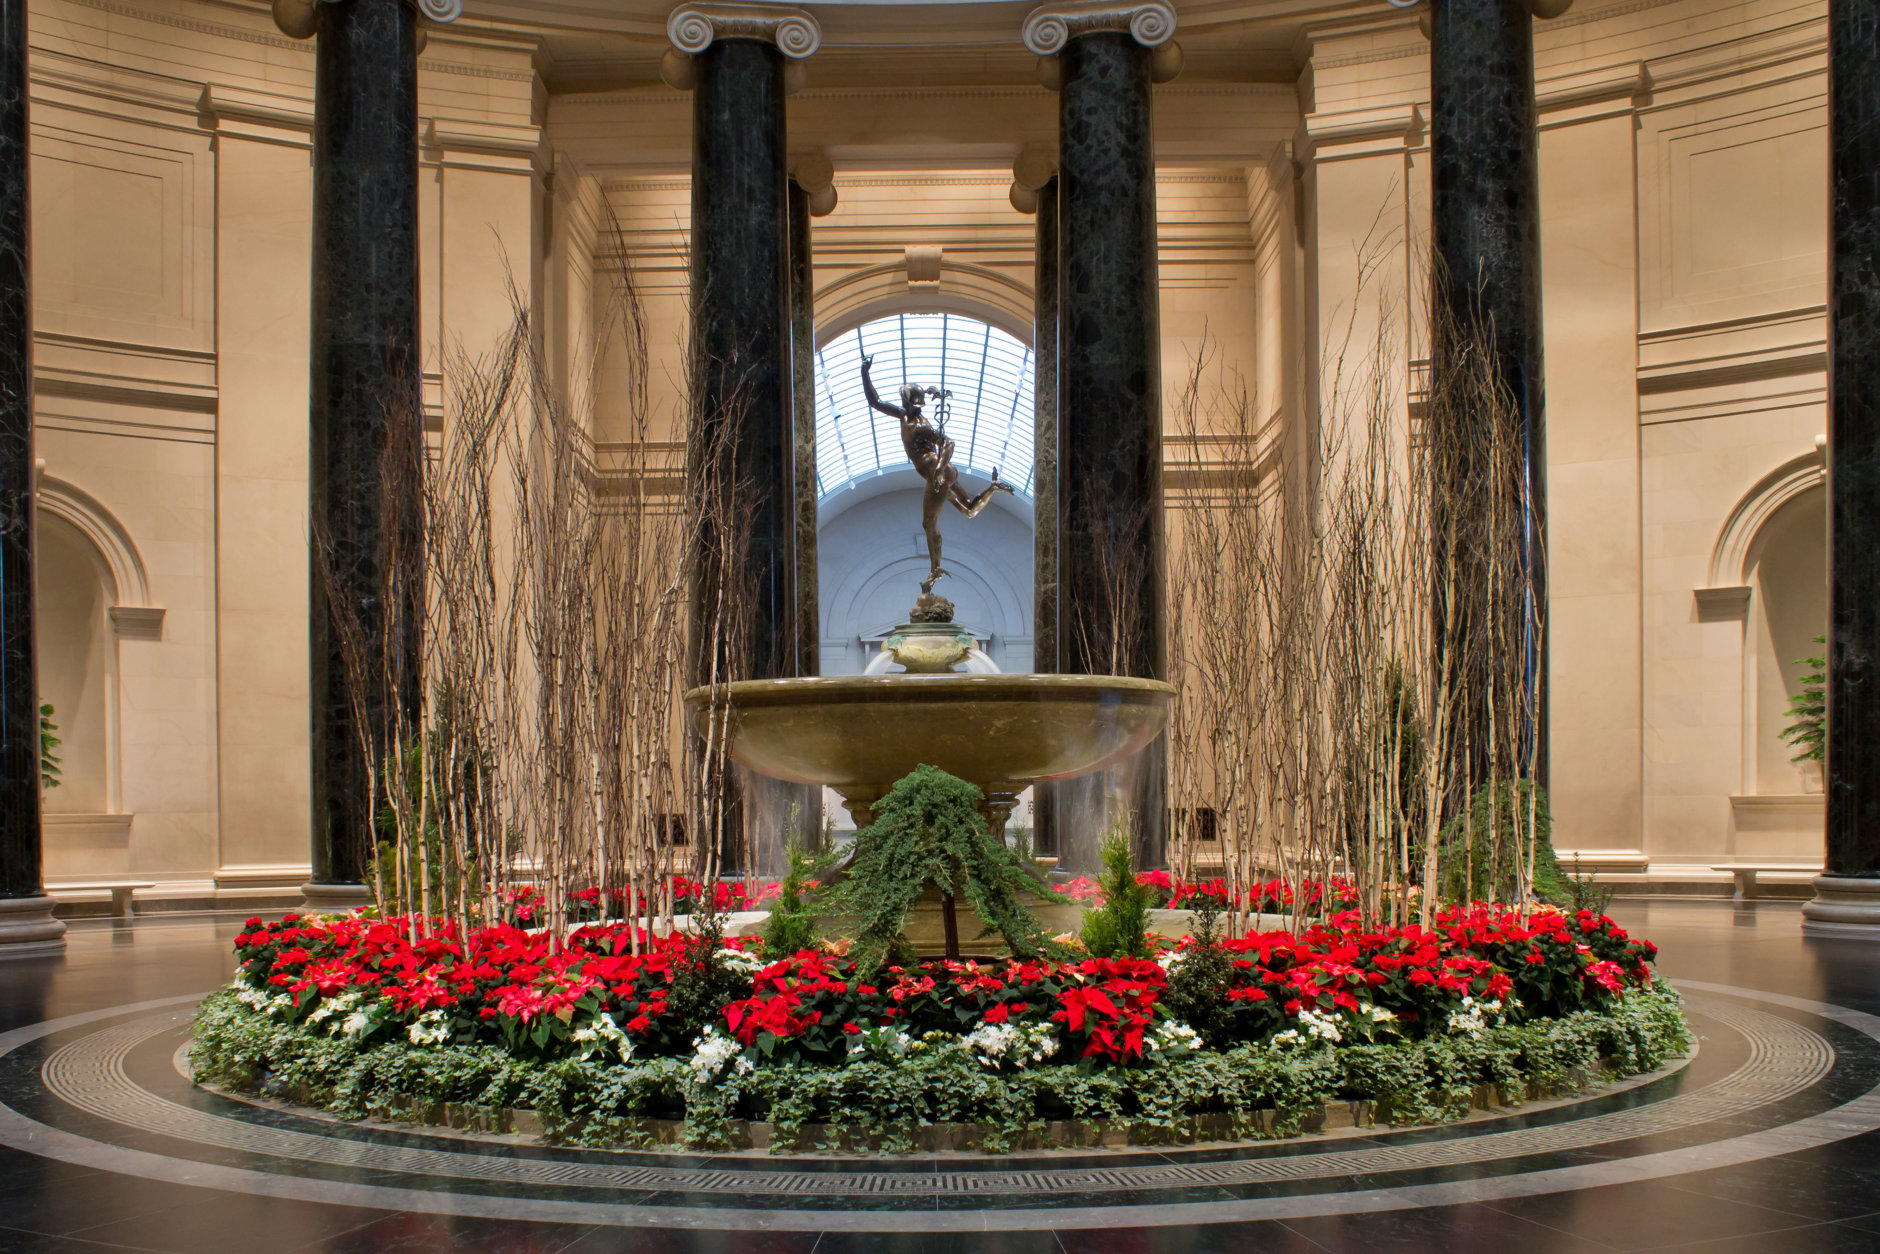 Stunning floral displays in the West Building Rotunda rotate throughout the winter and into spring and make the Gallery a classic holiday destination. (Courtesy National Gallery of Art)